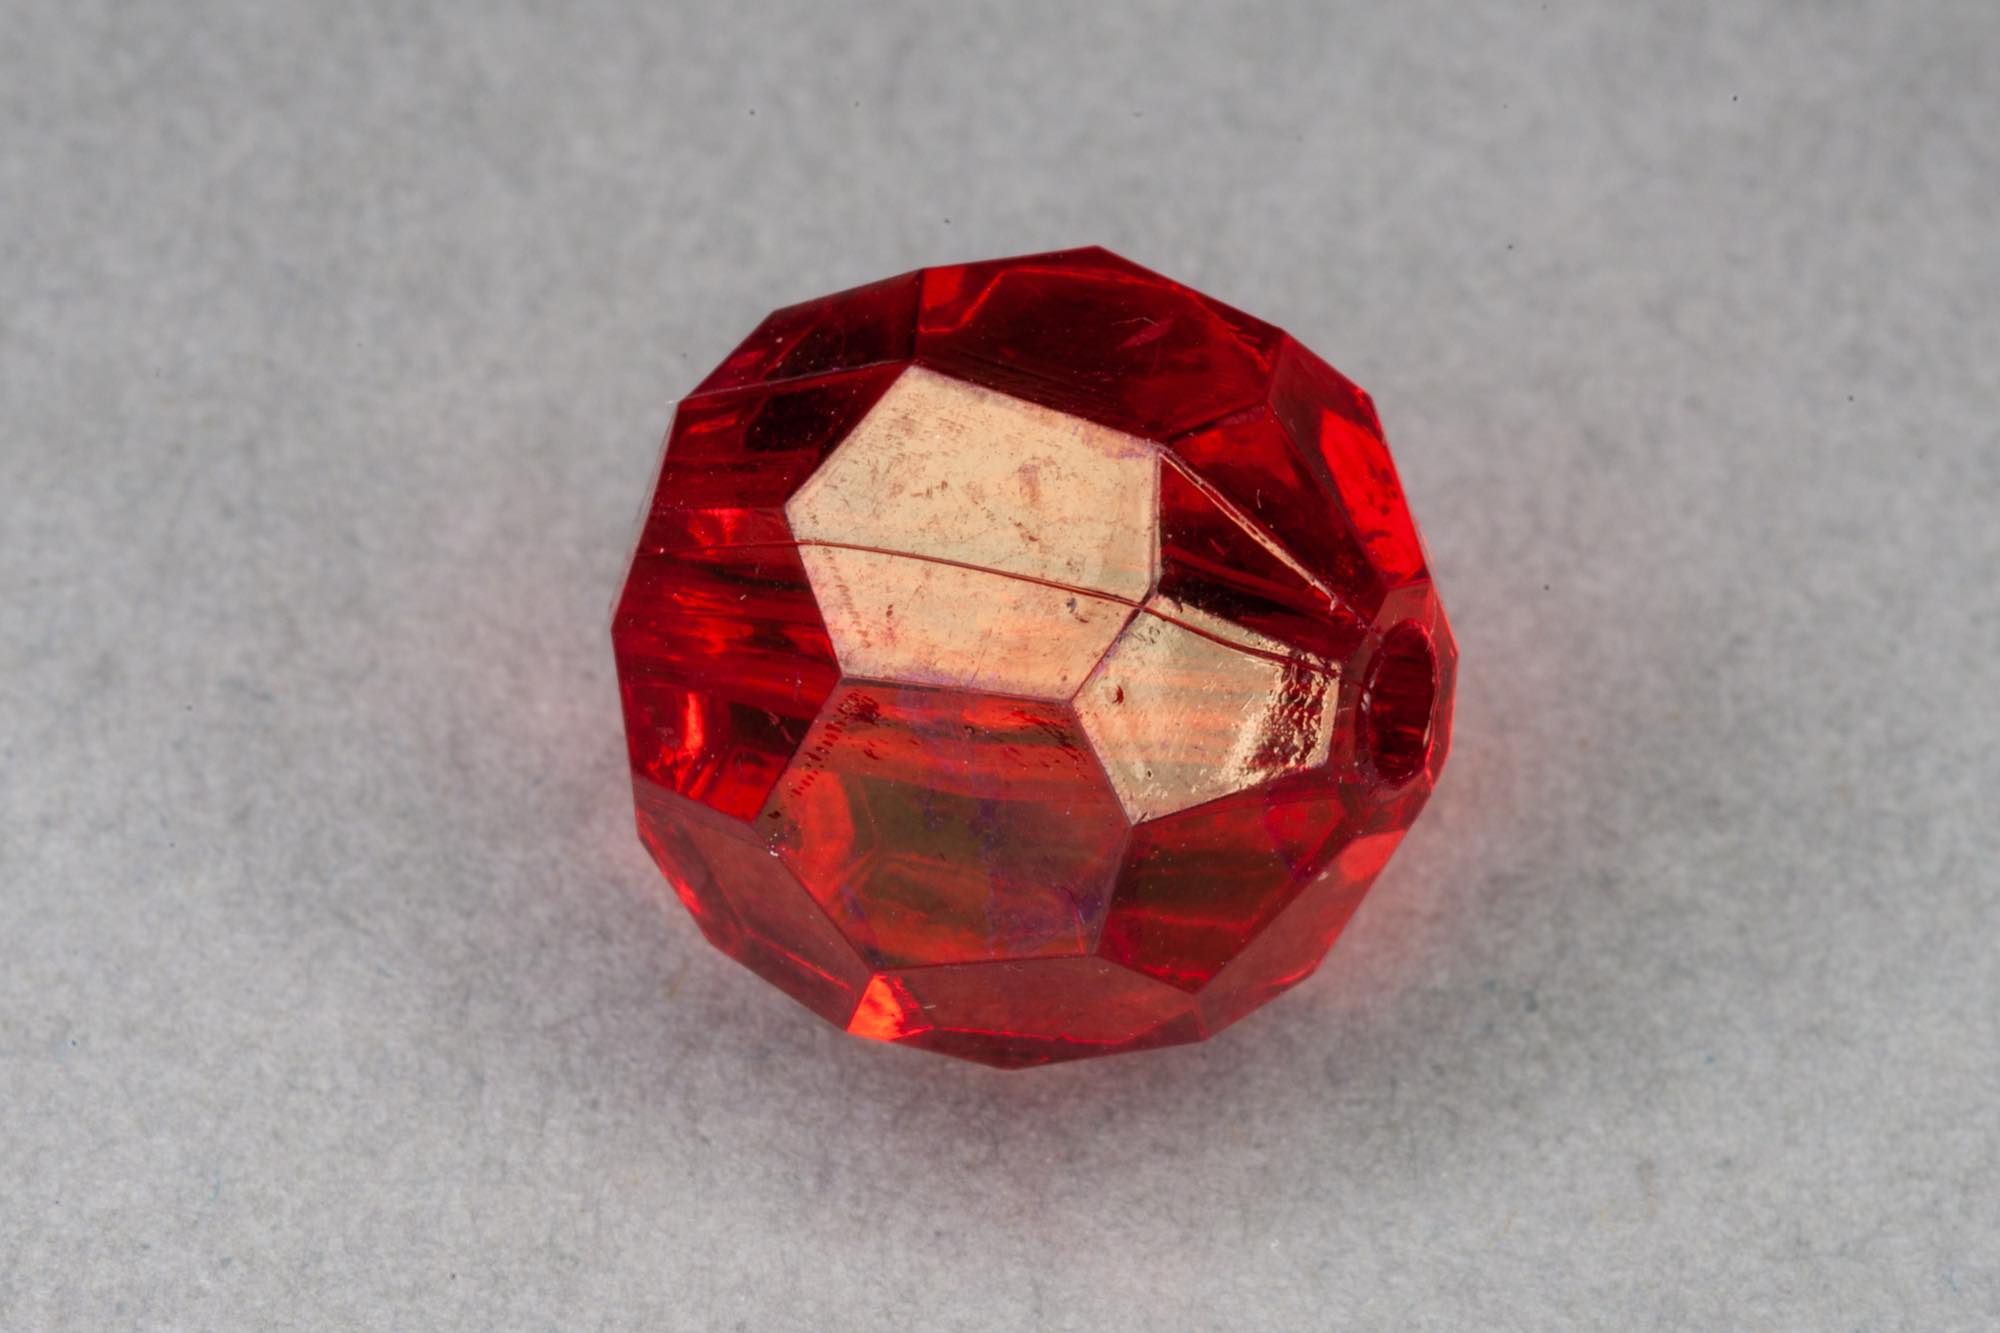 Red Faceted Transparent Acrylic Bead, 1.5mm hole